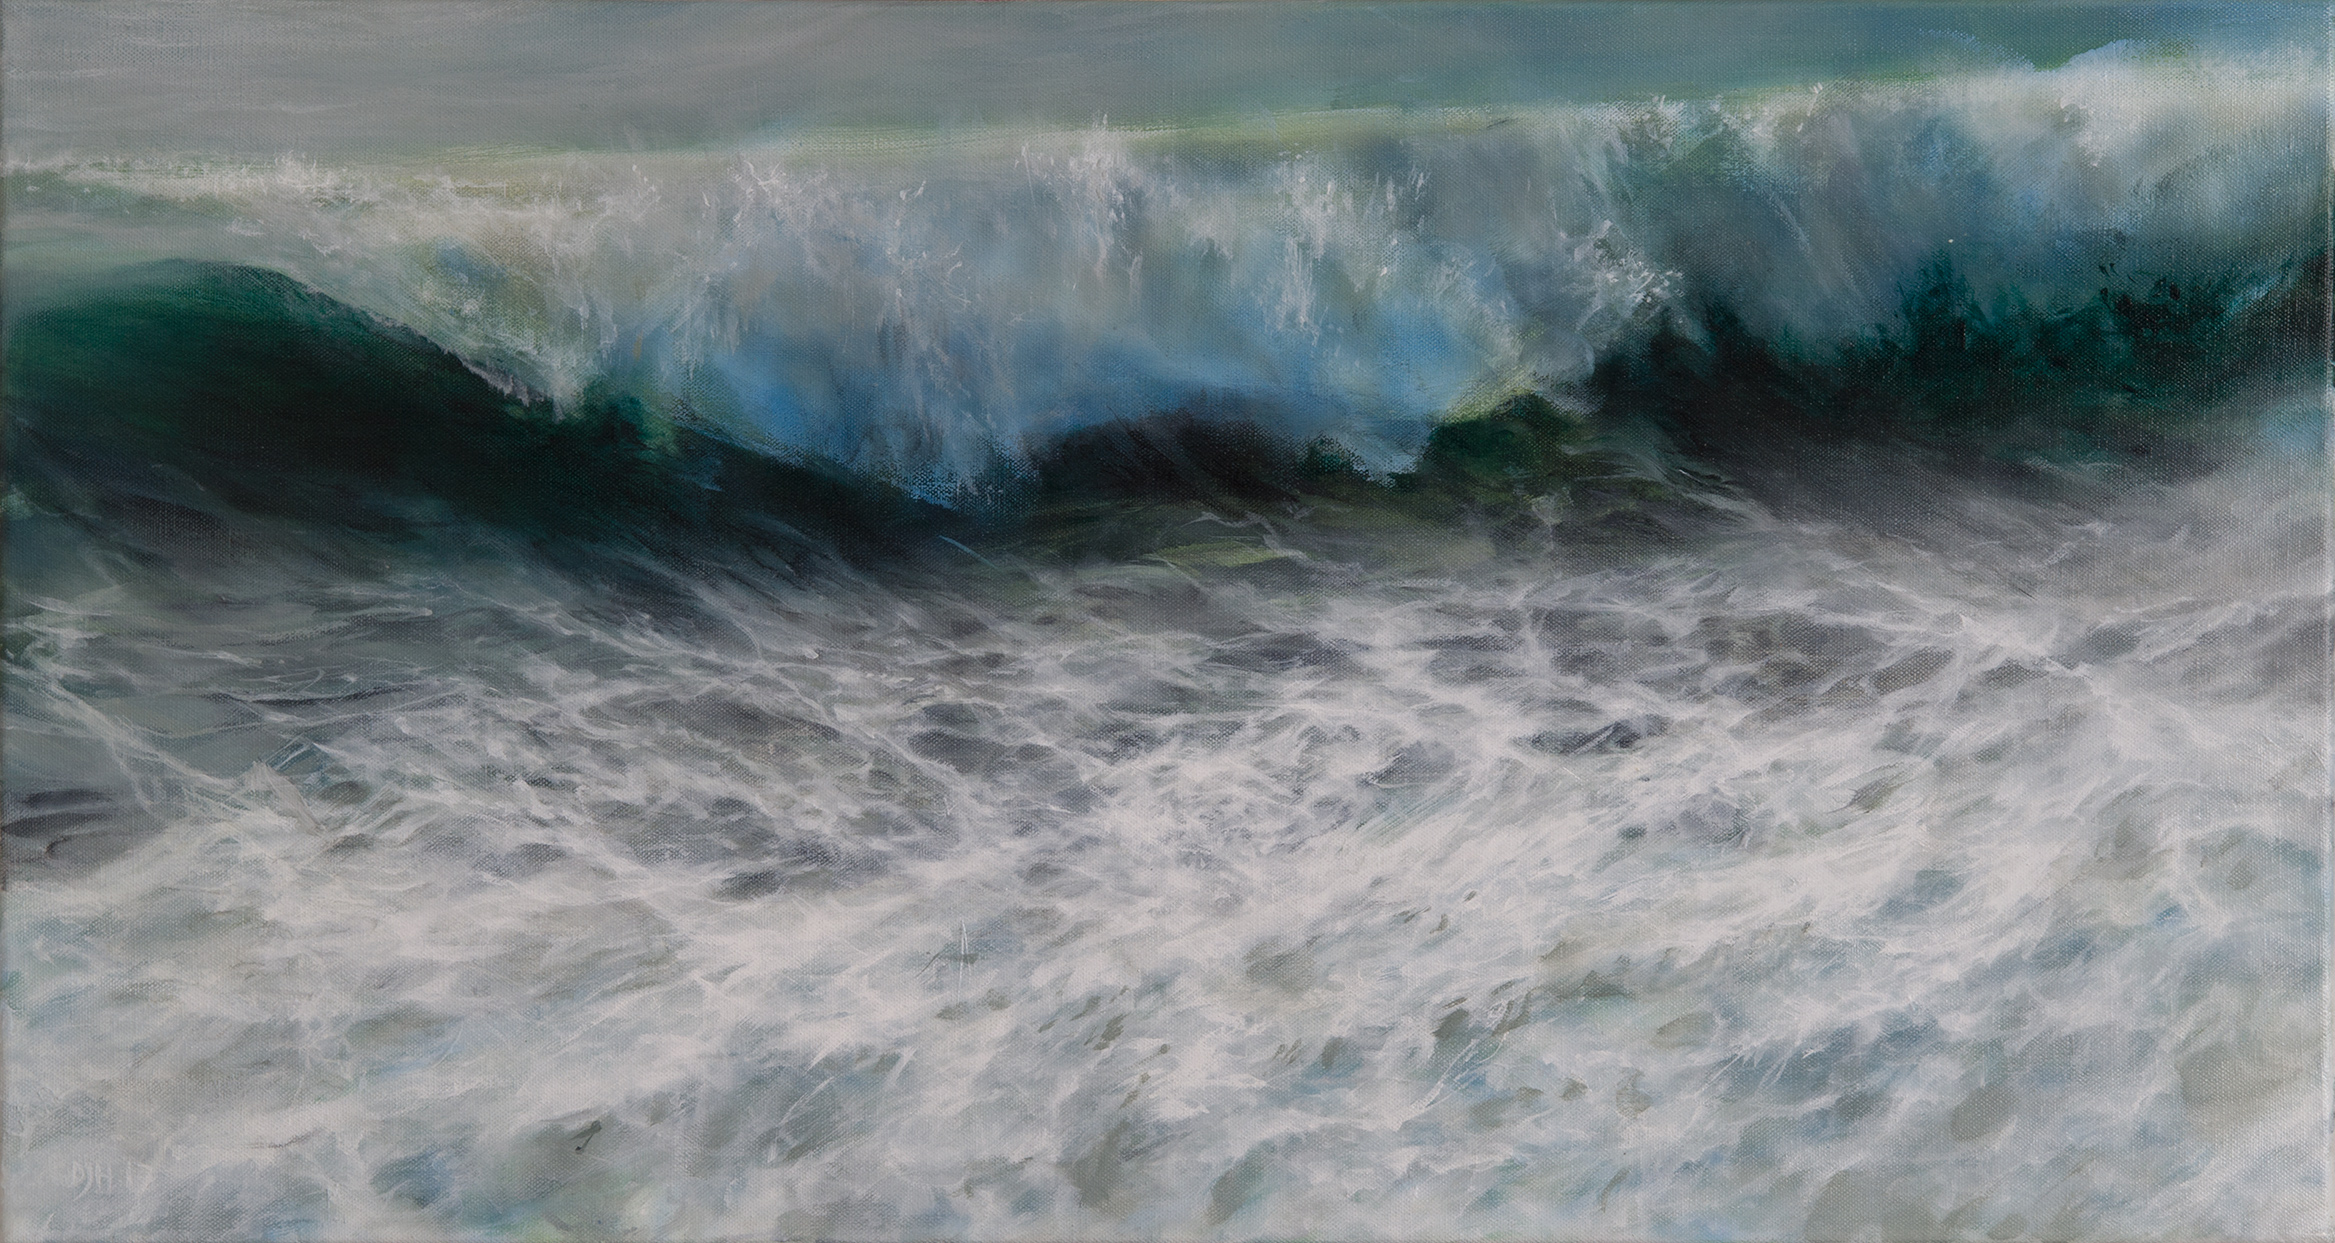 THE SEASONAL – A Solo Xmas Exhibition At The Castle, Bude. 4th Dec 2020 – 8th Jan 2021